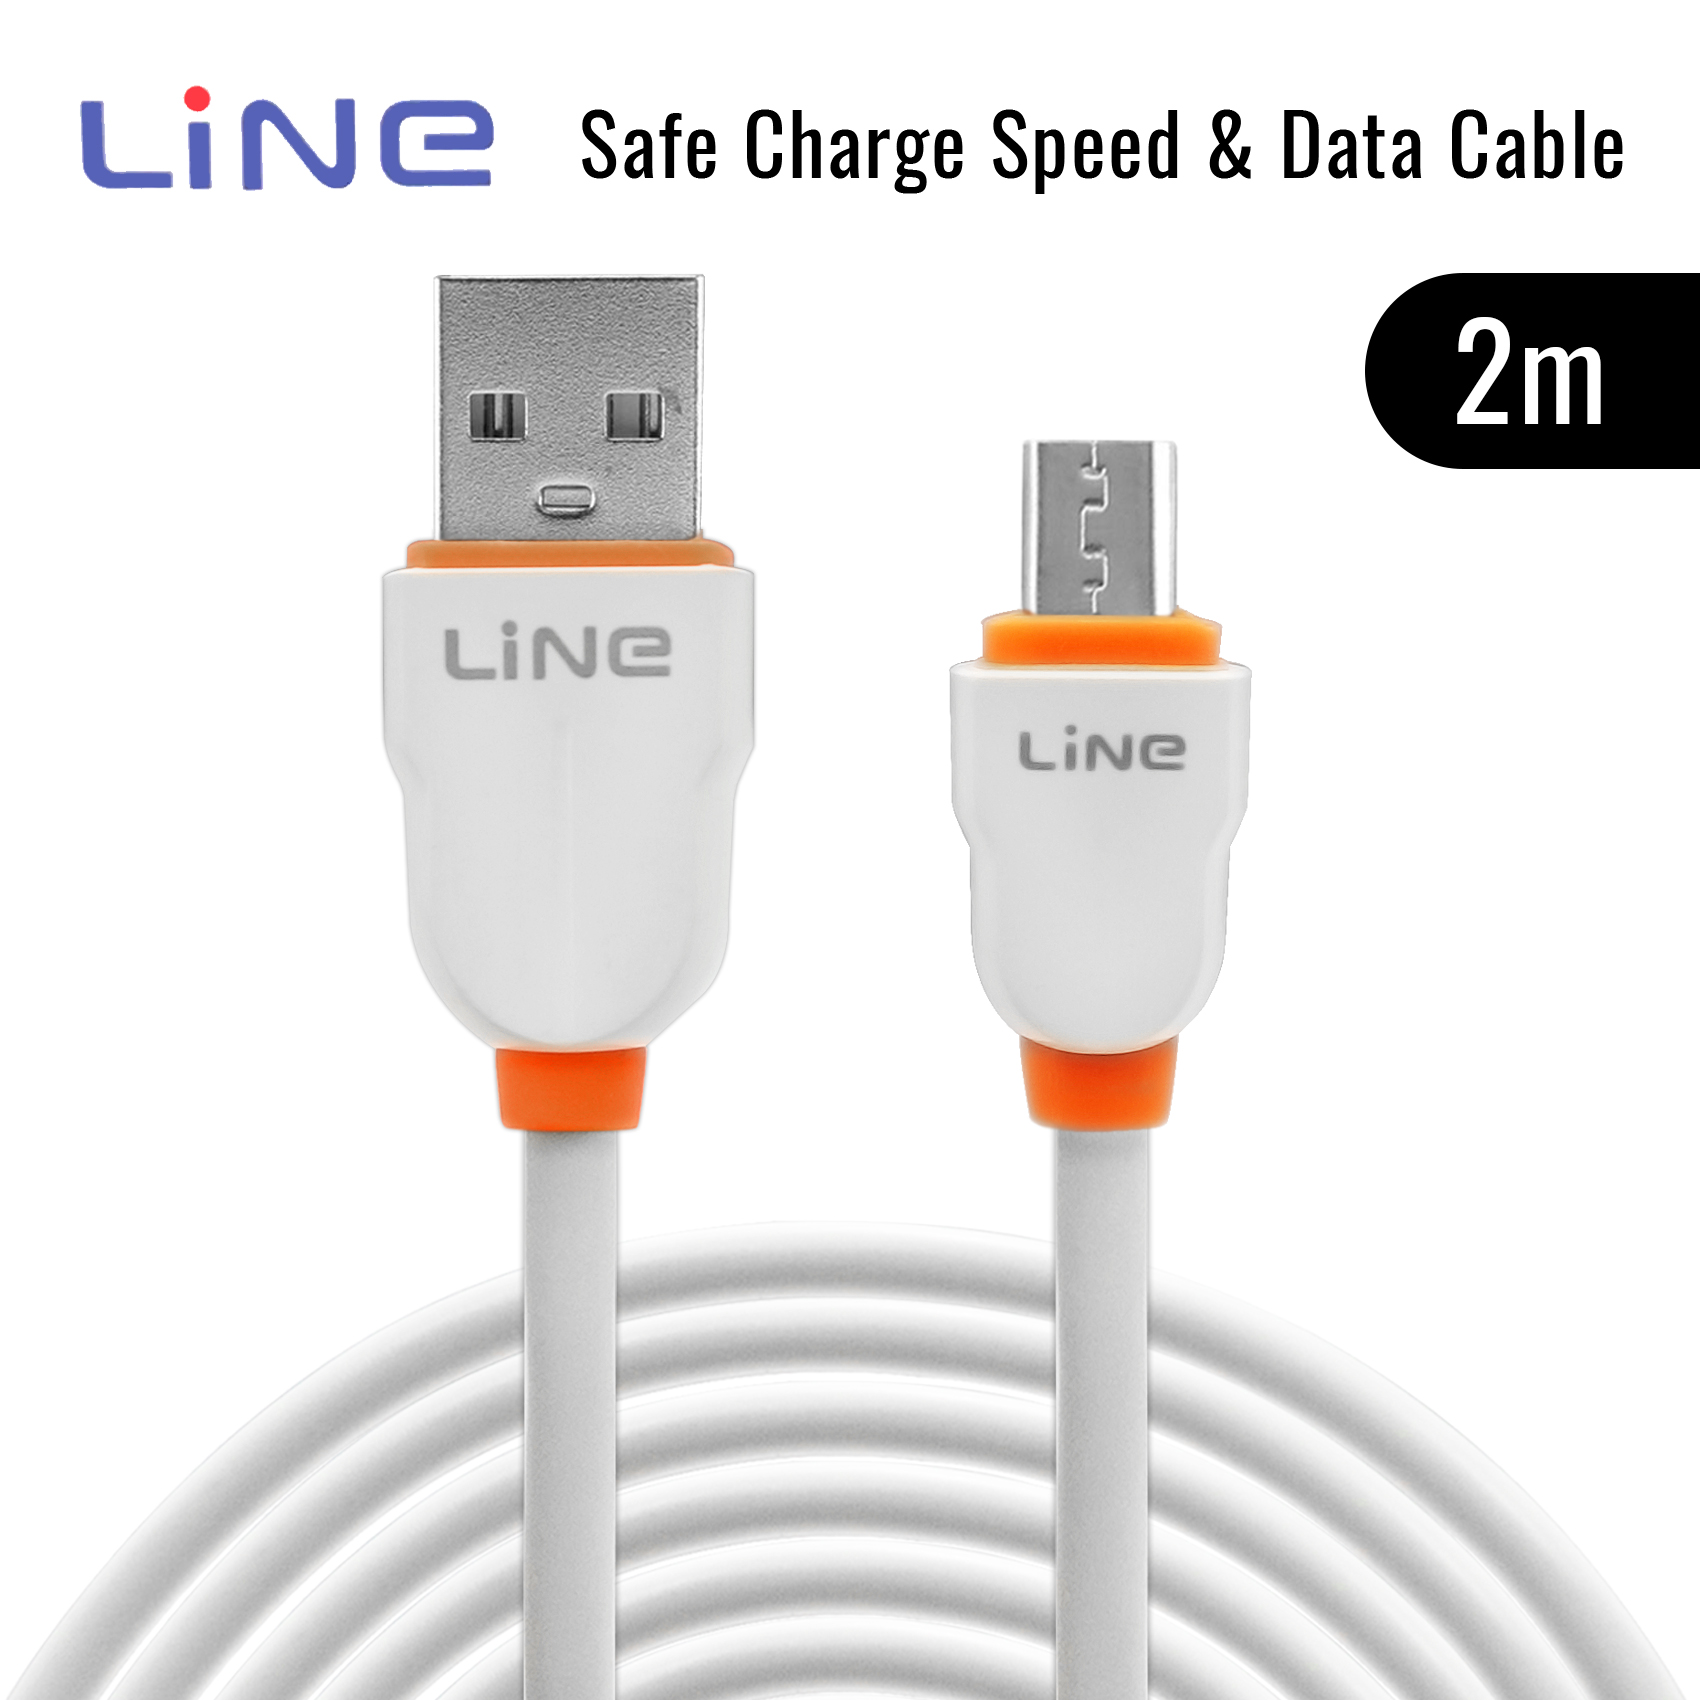 2 Meters Micro Safe Charge Speed and Data Cable - Orange